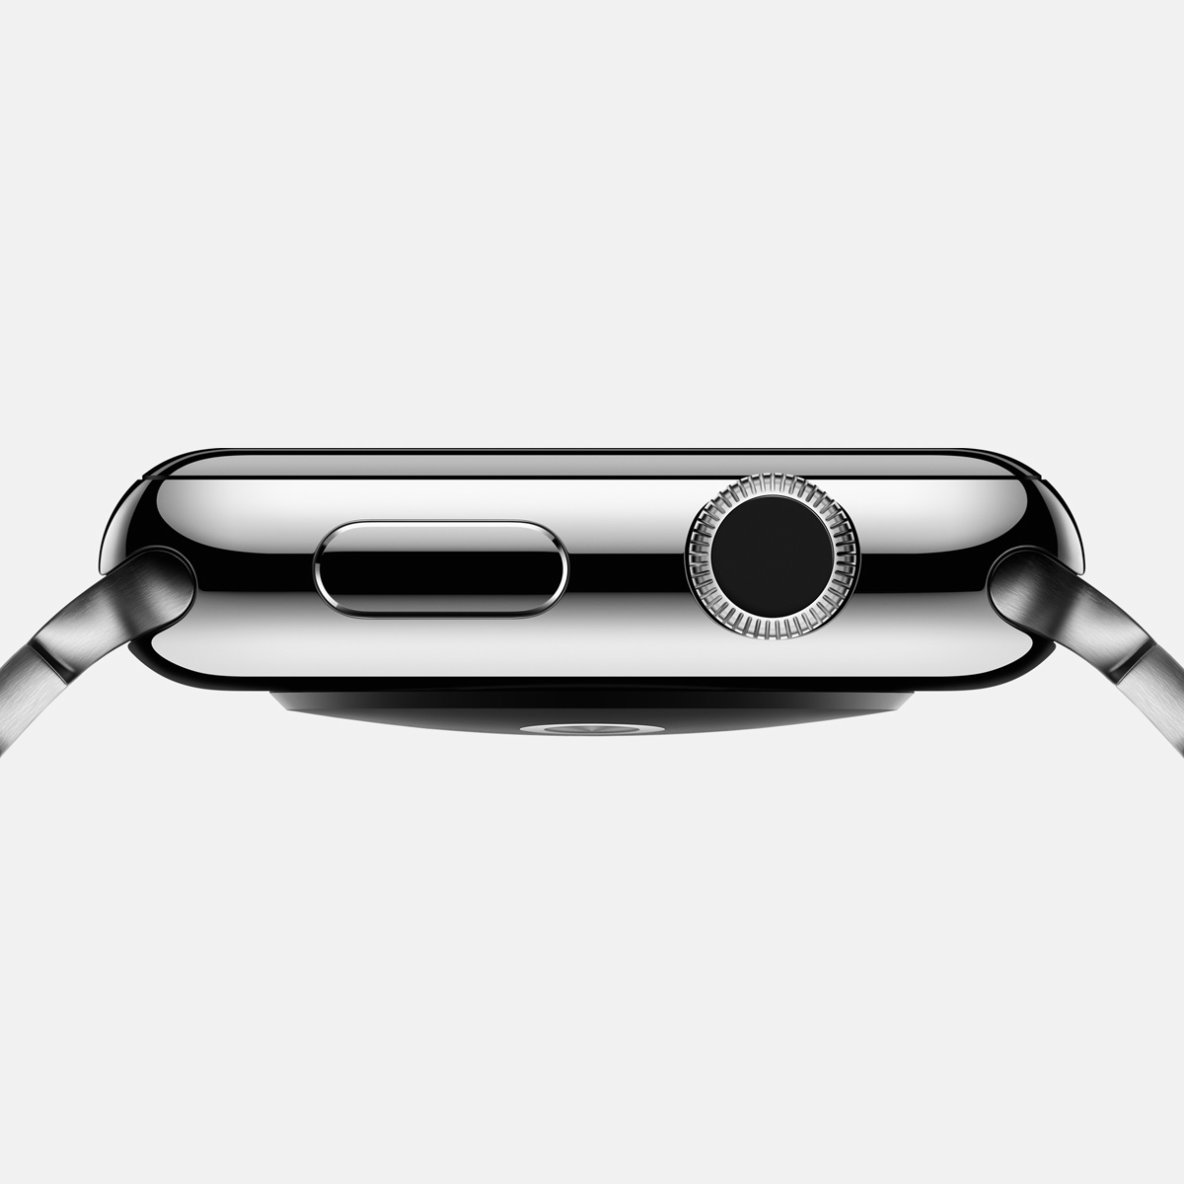 Apple Watch: Launched for those into iOS tech and innovation